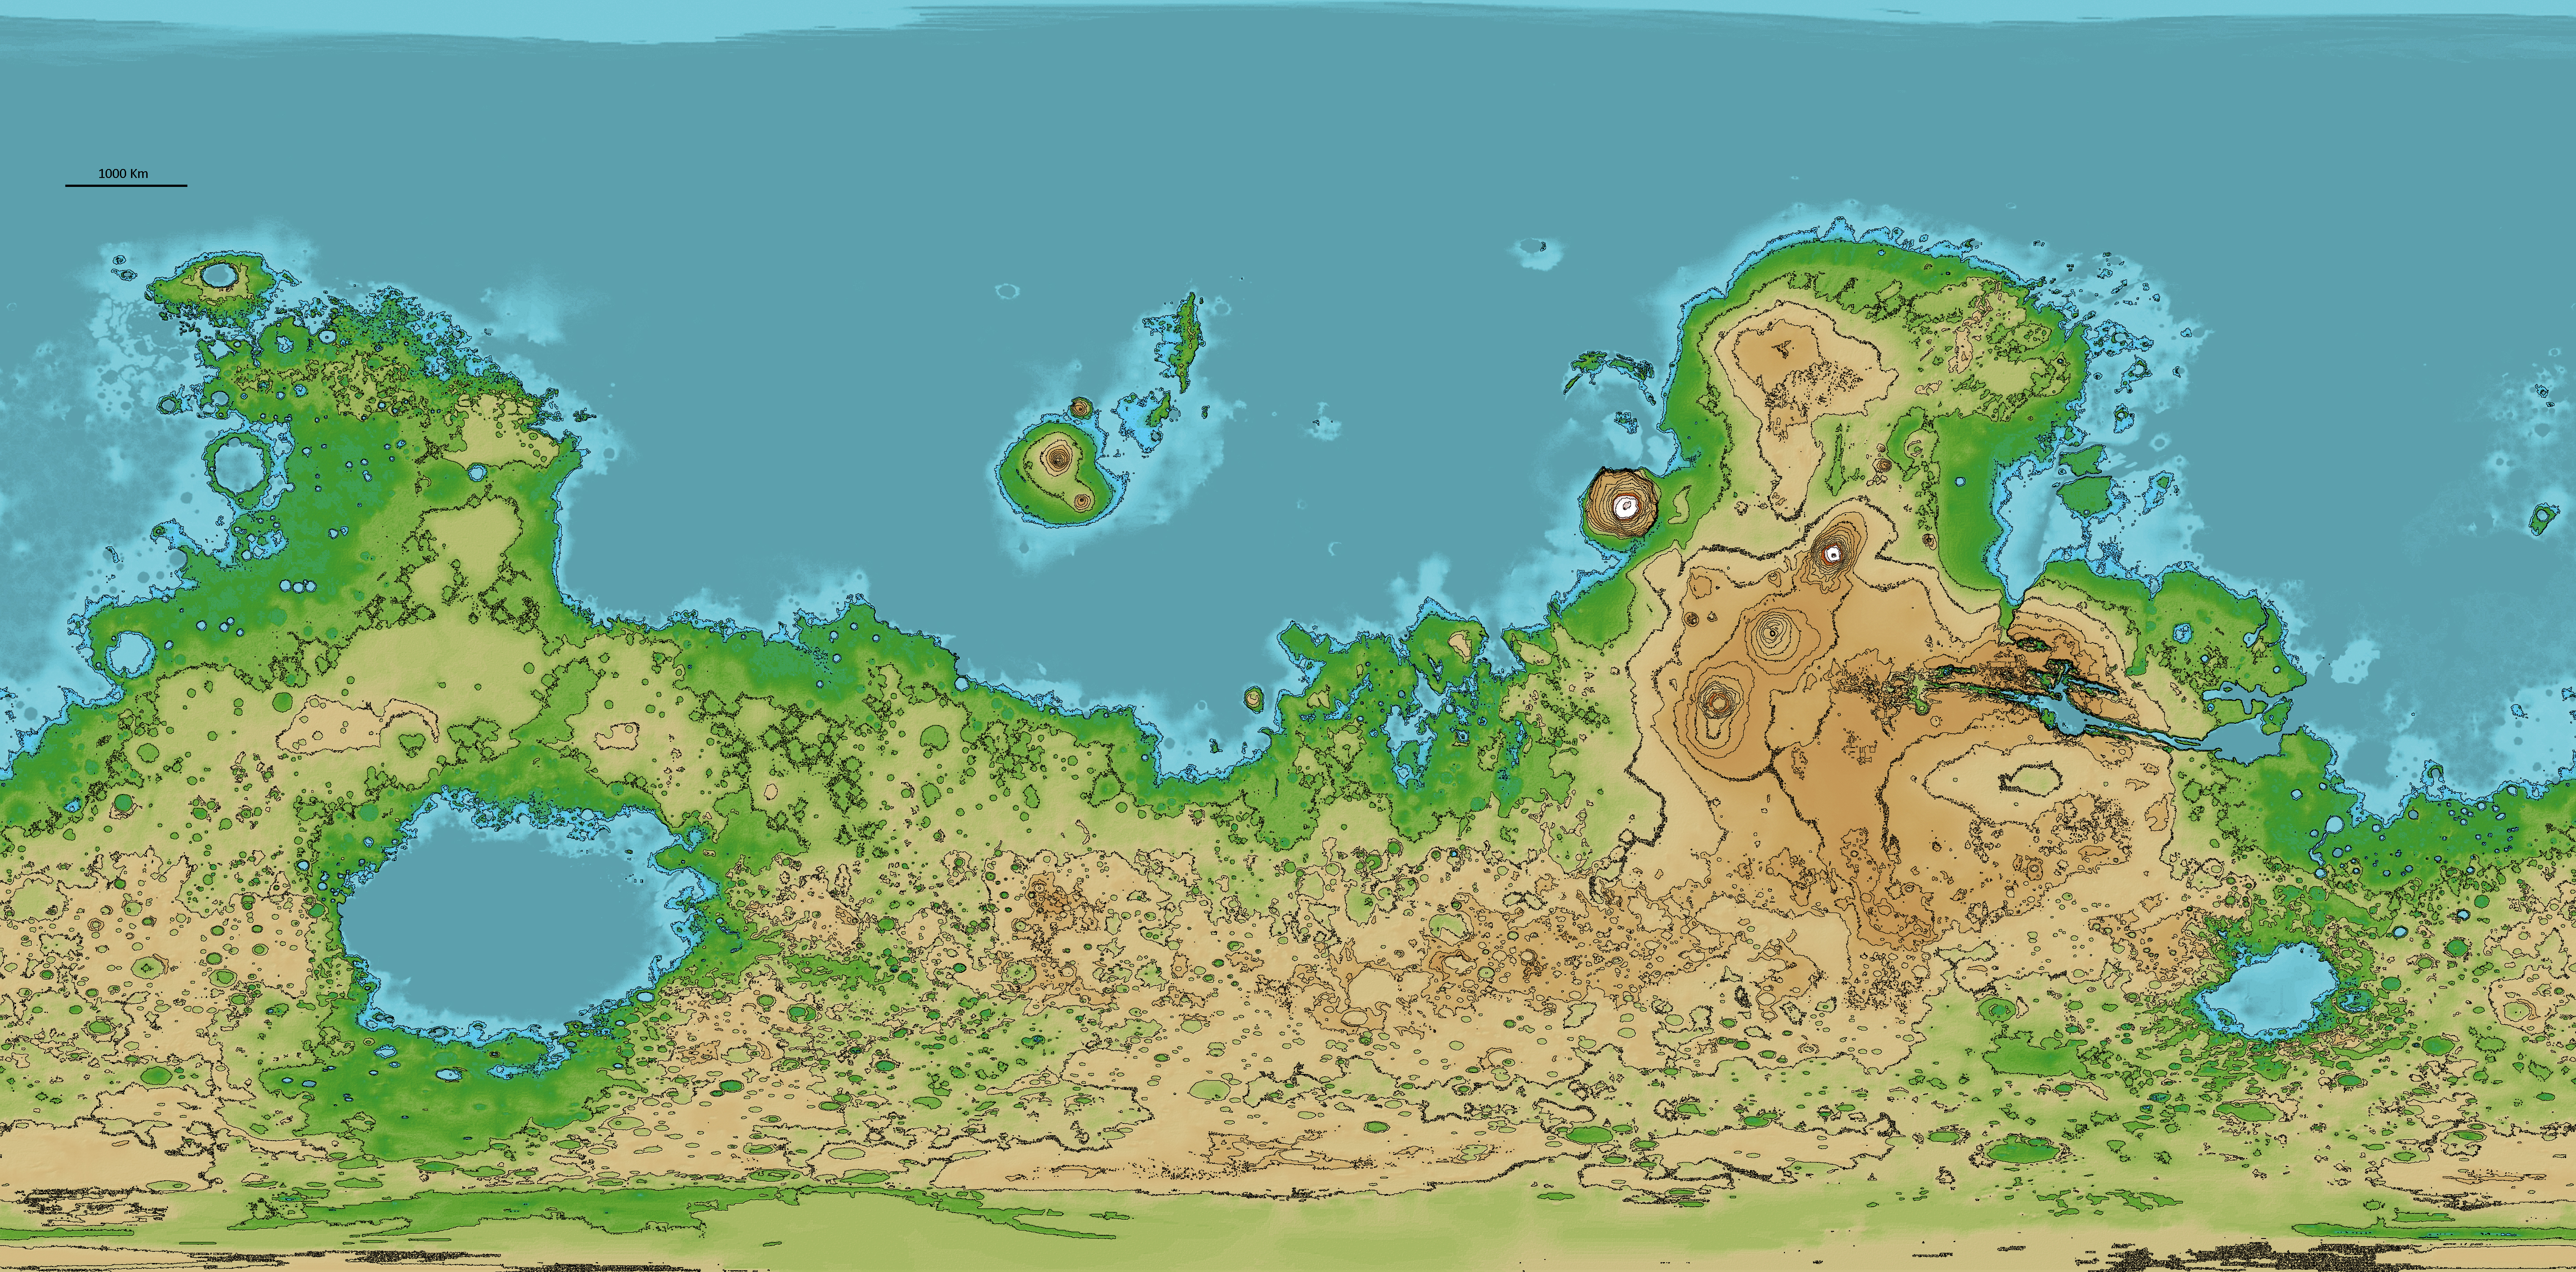 Mars Relief Map by AxiaTerraArtUnion on DeviantArt on borealis basin on mars, detailed map of mars, map of a trip to mars, political map of mars, map of mars space, map of mars land, modern map of mars, map of mars with water, terraforming of mars,